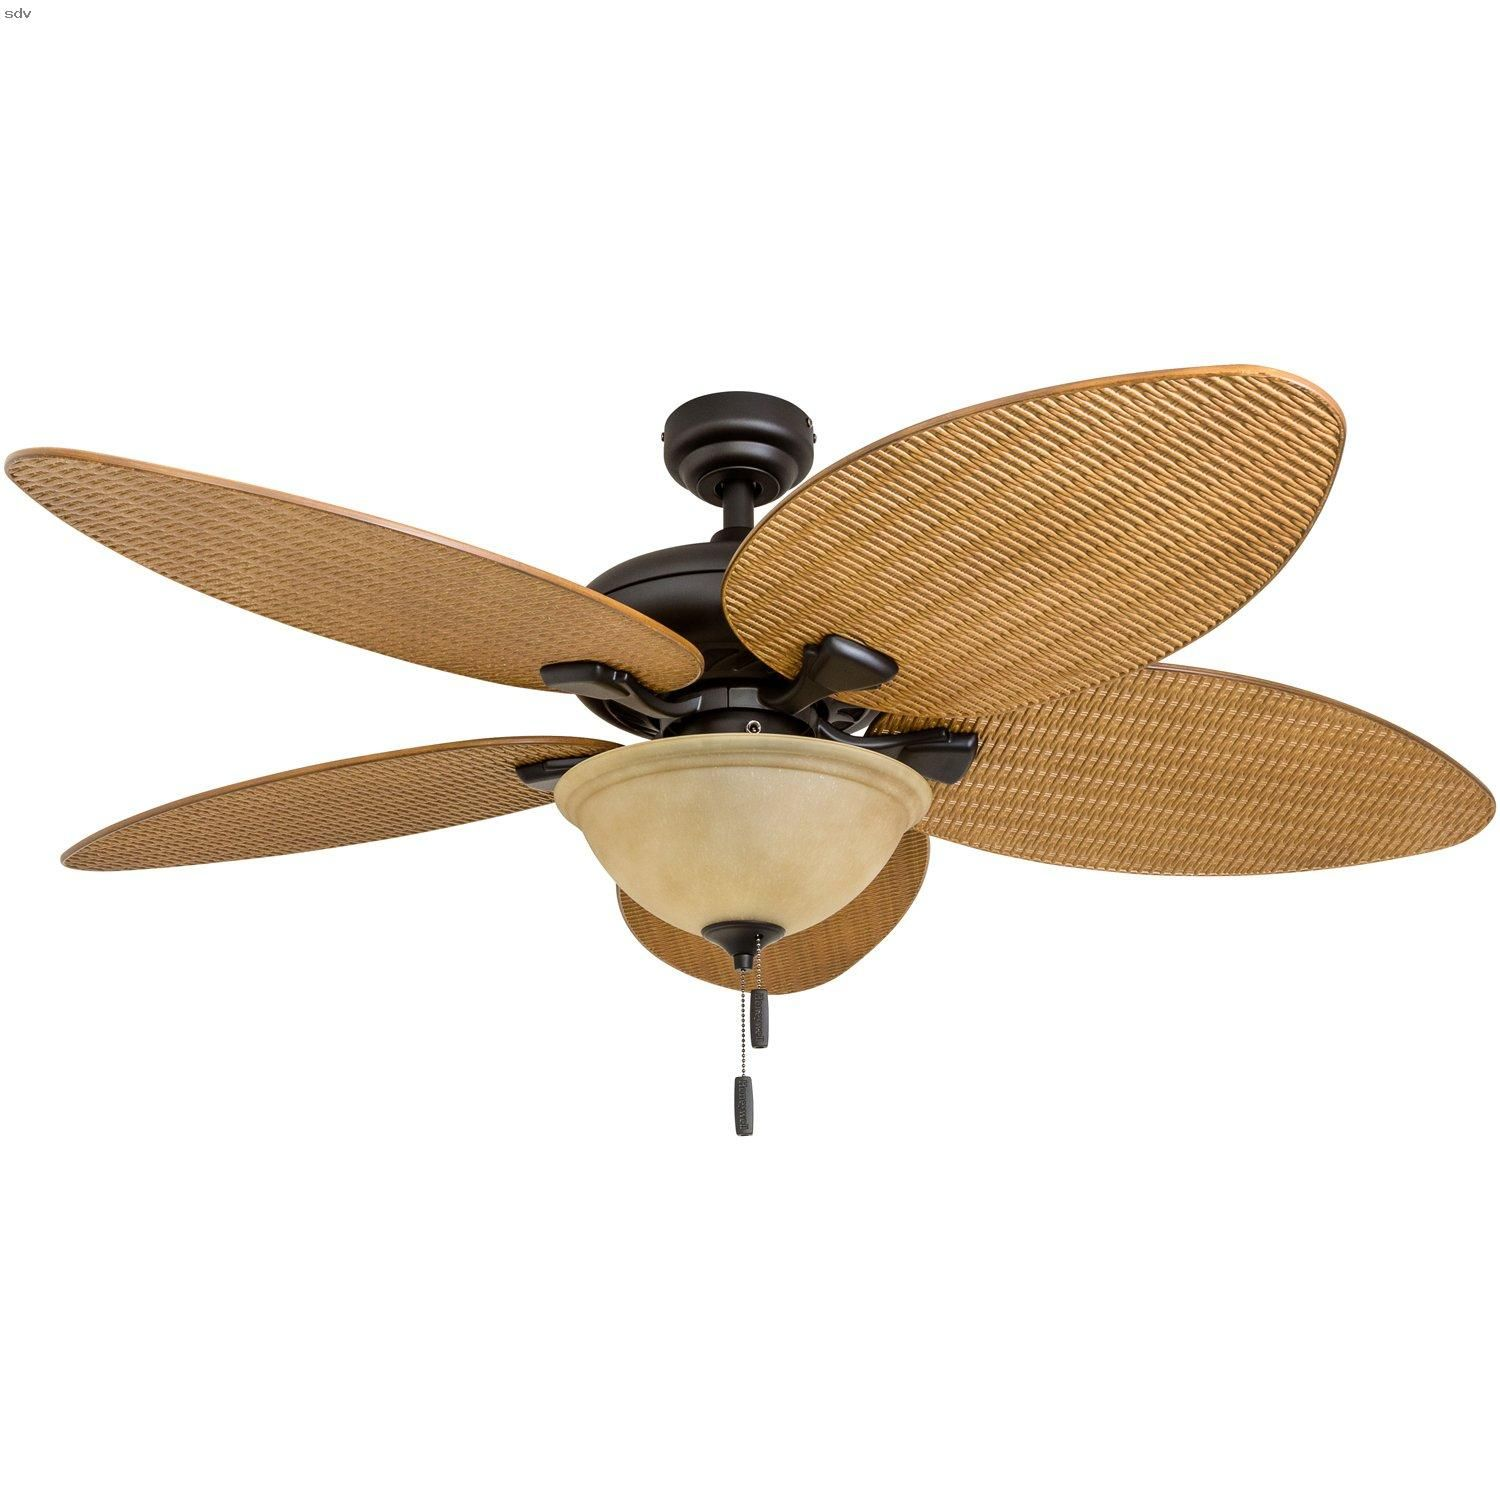 Pin On Ceiling Fans Ideas